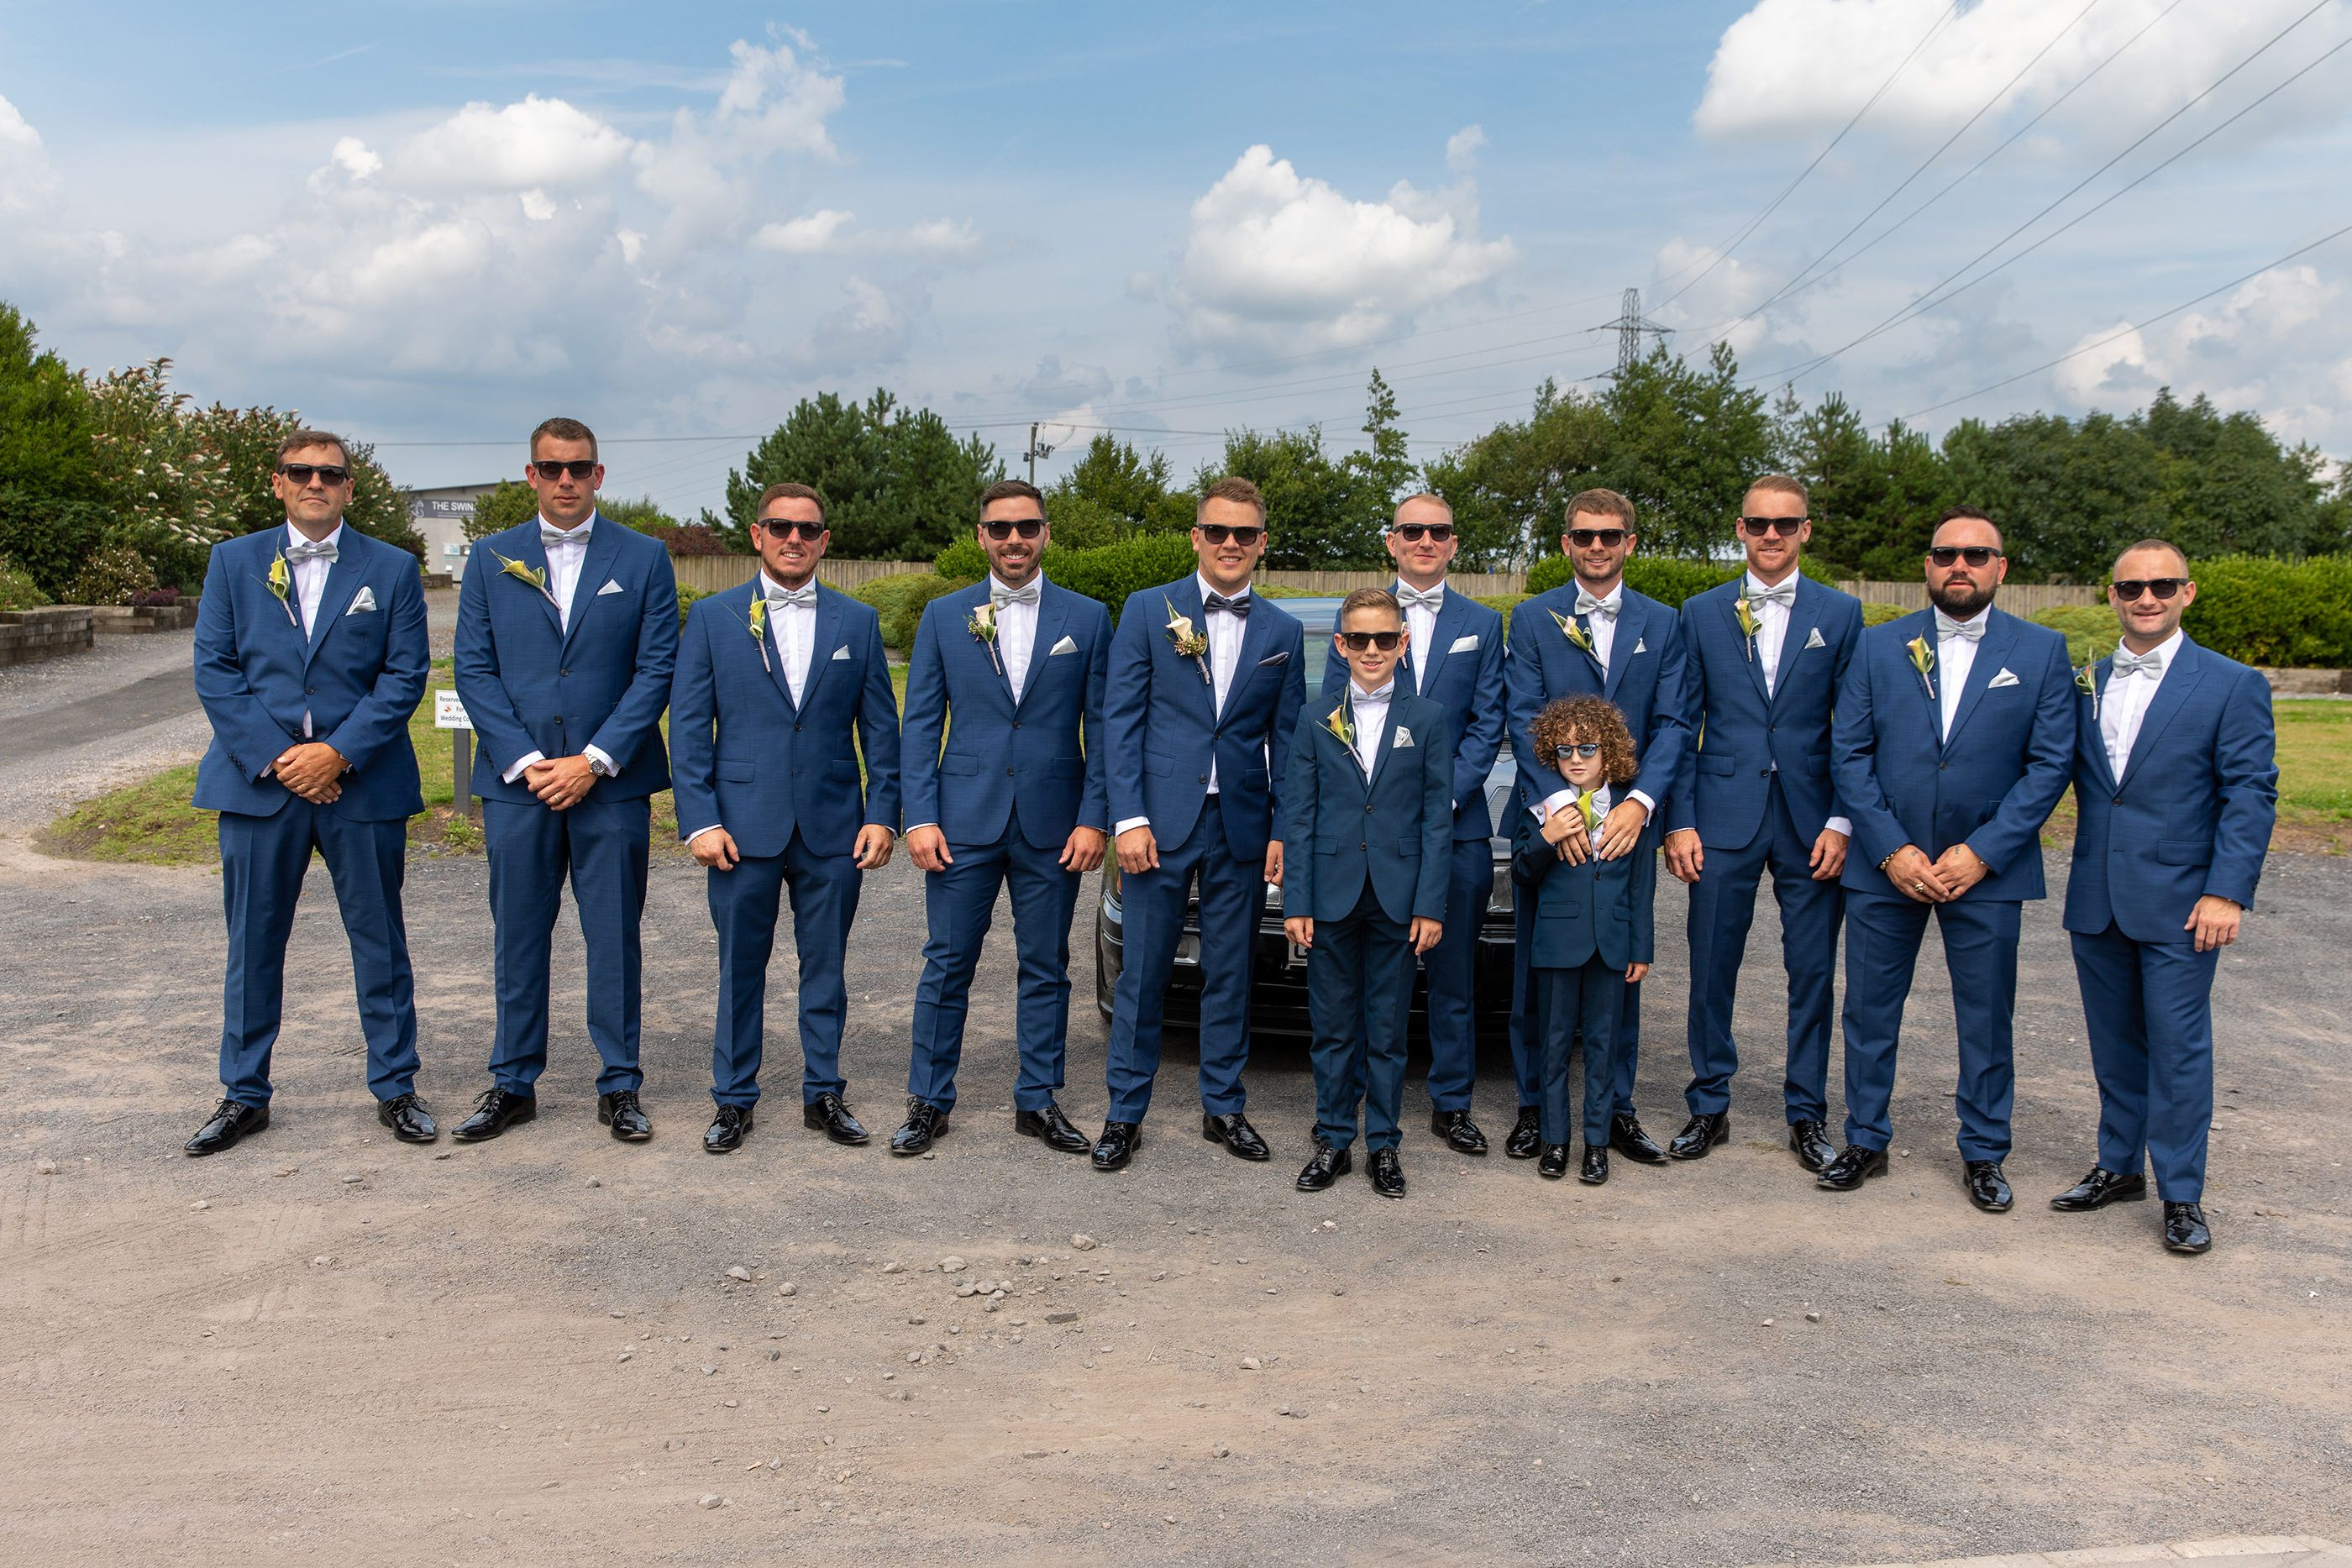 the groom and the men